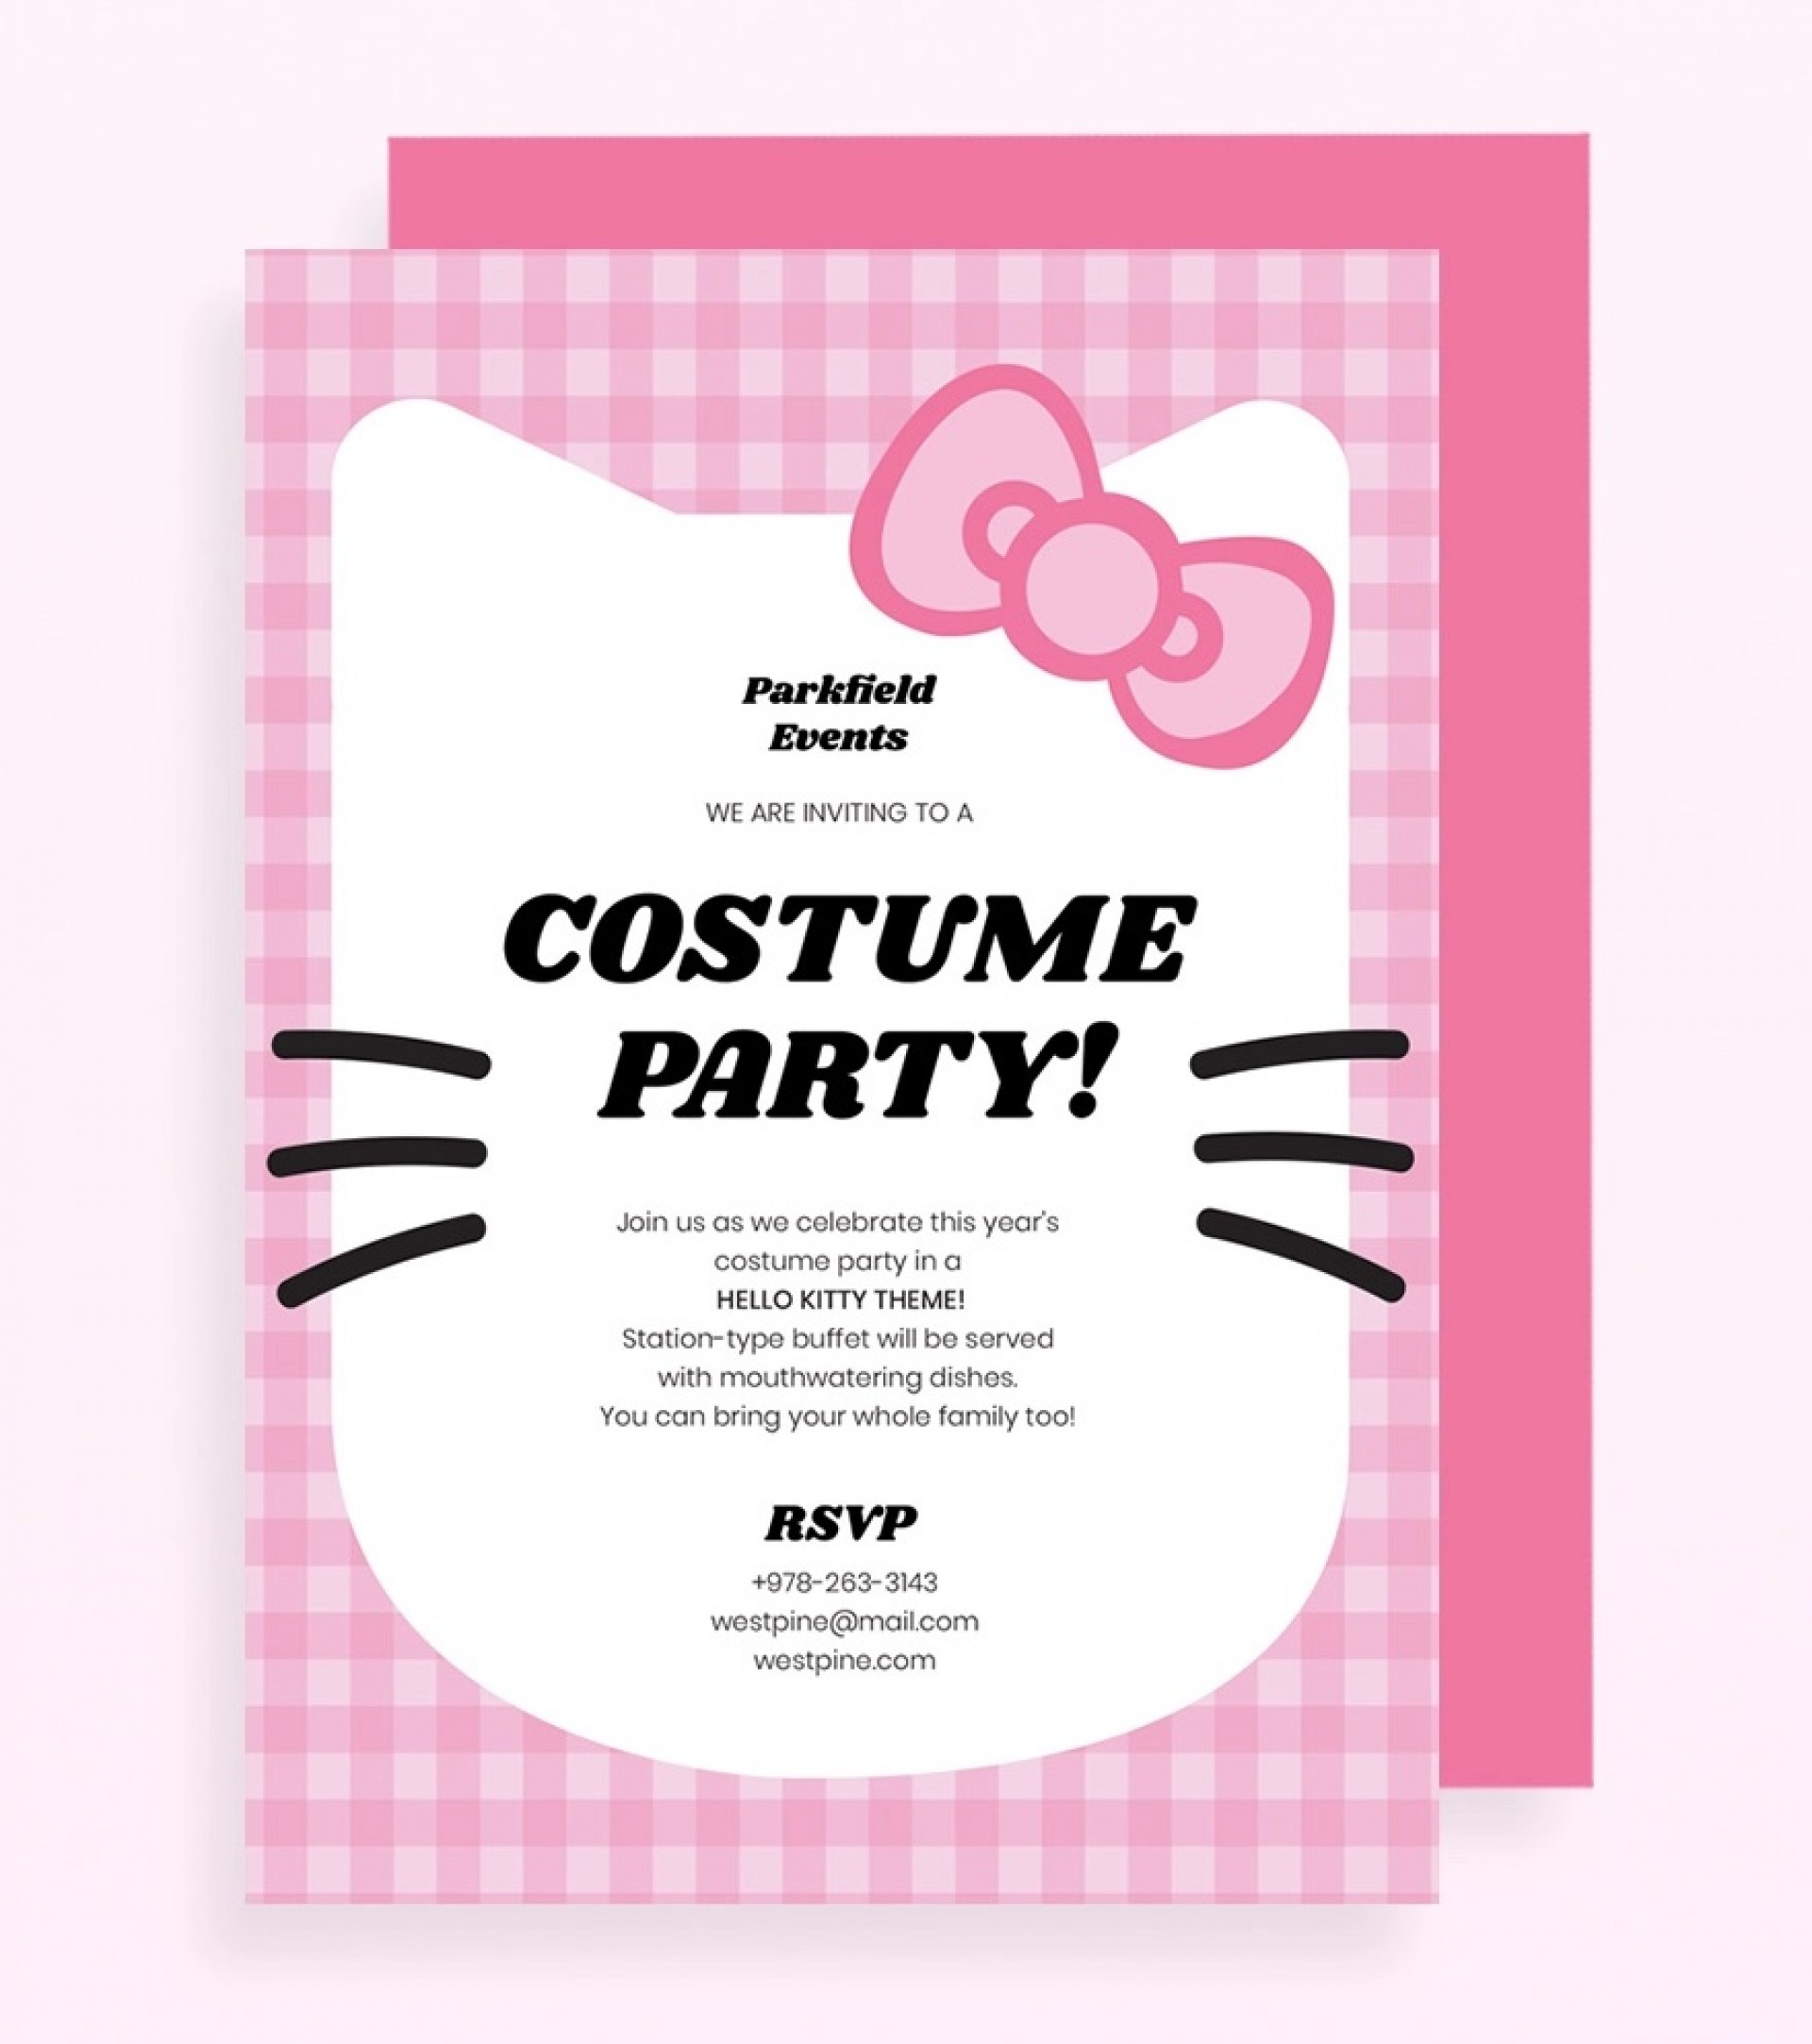 Hello Kitty Party Invitation Template Pink Jpg  Birthday Invite Editable1920